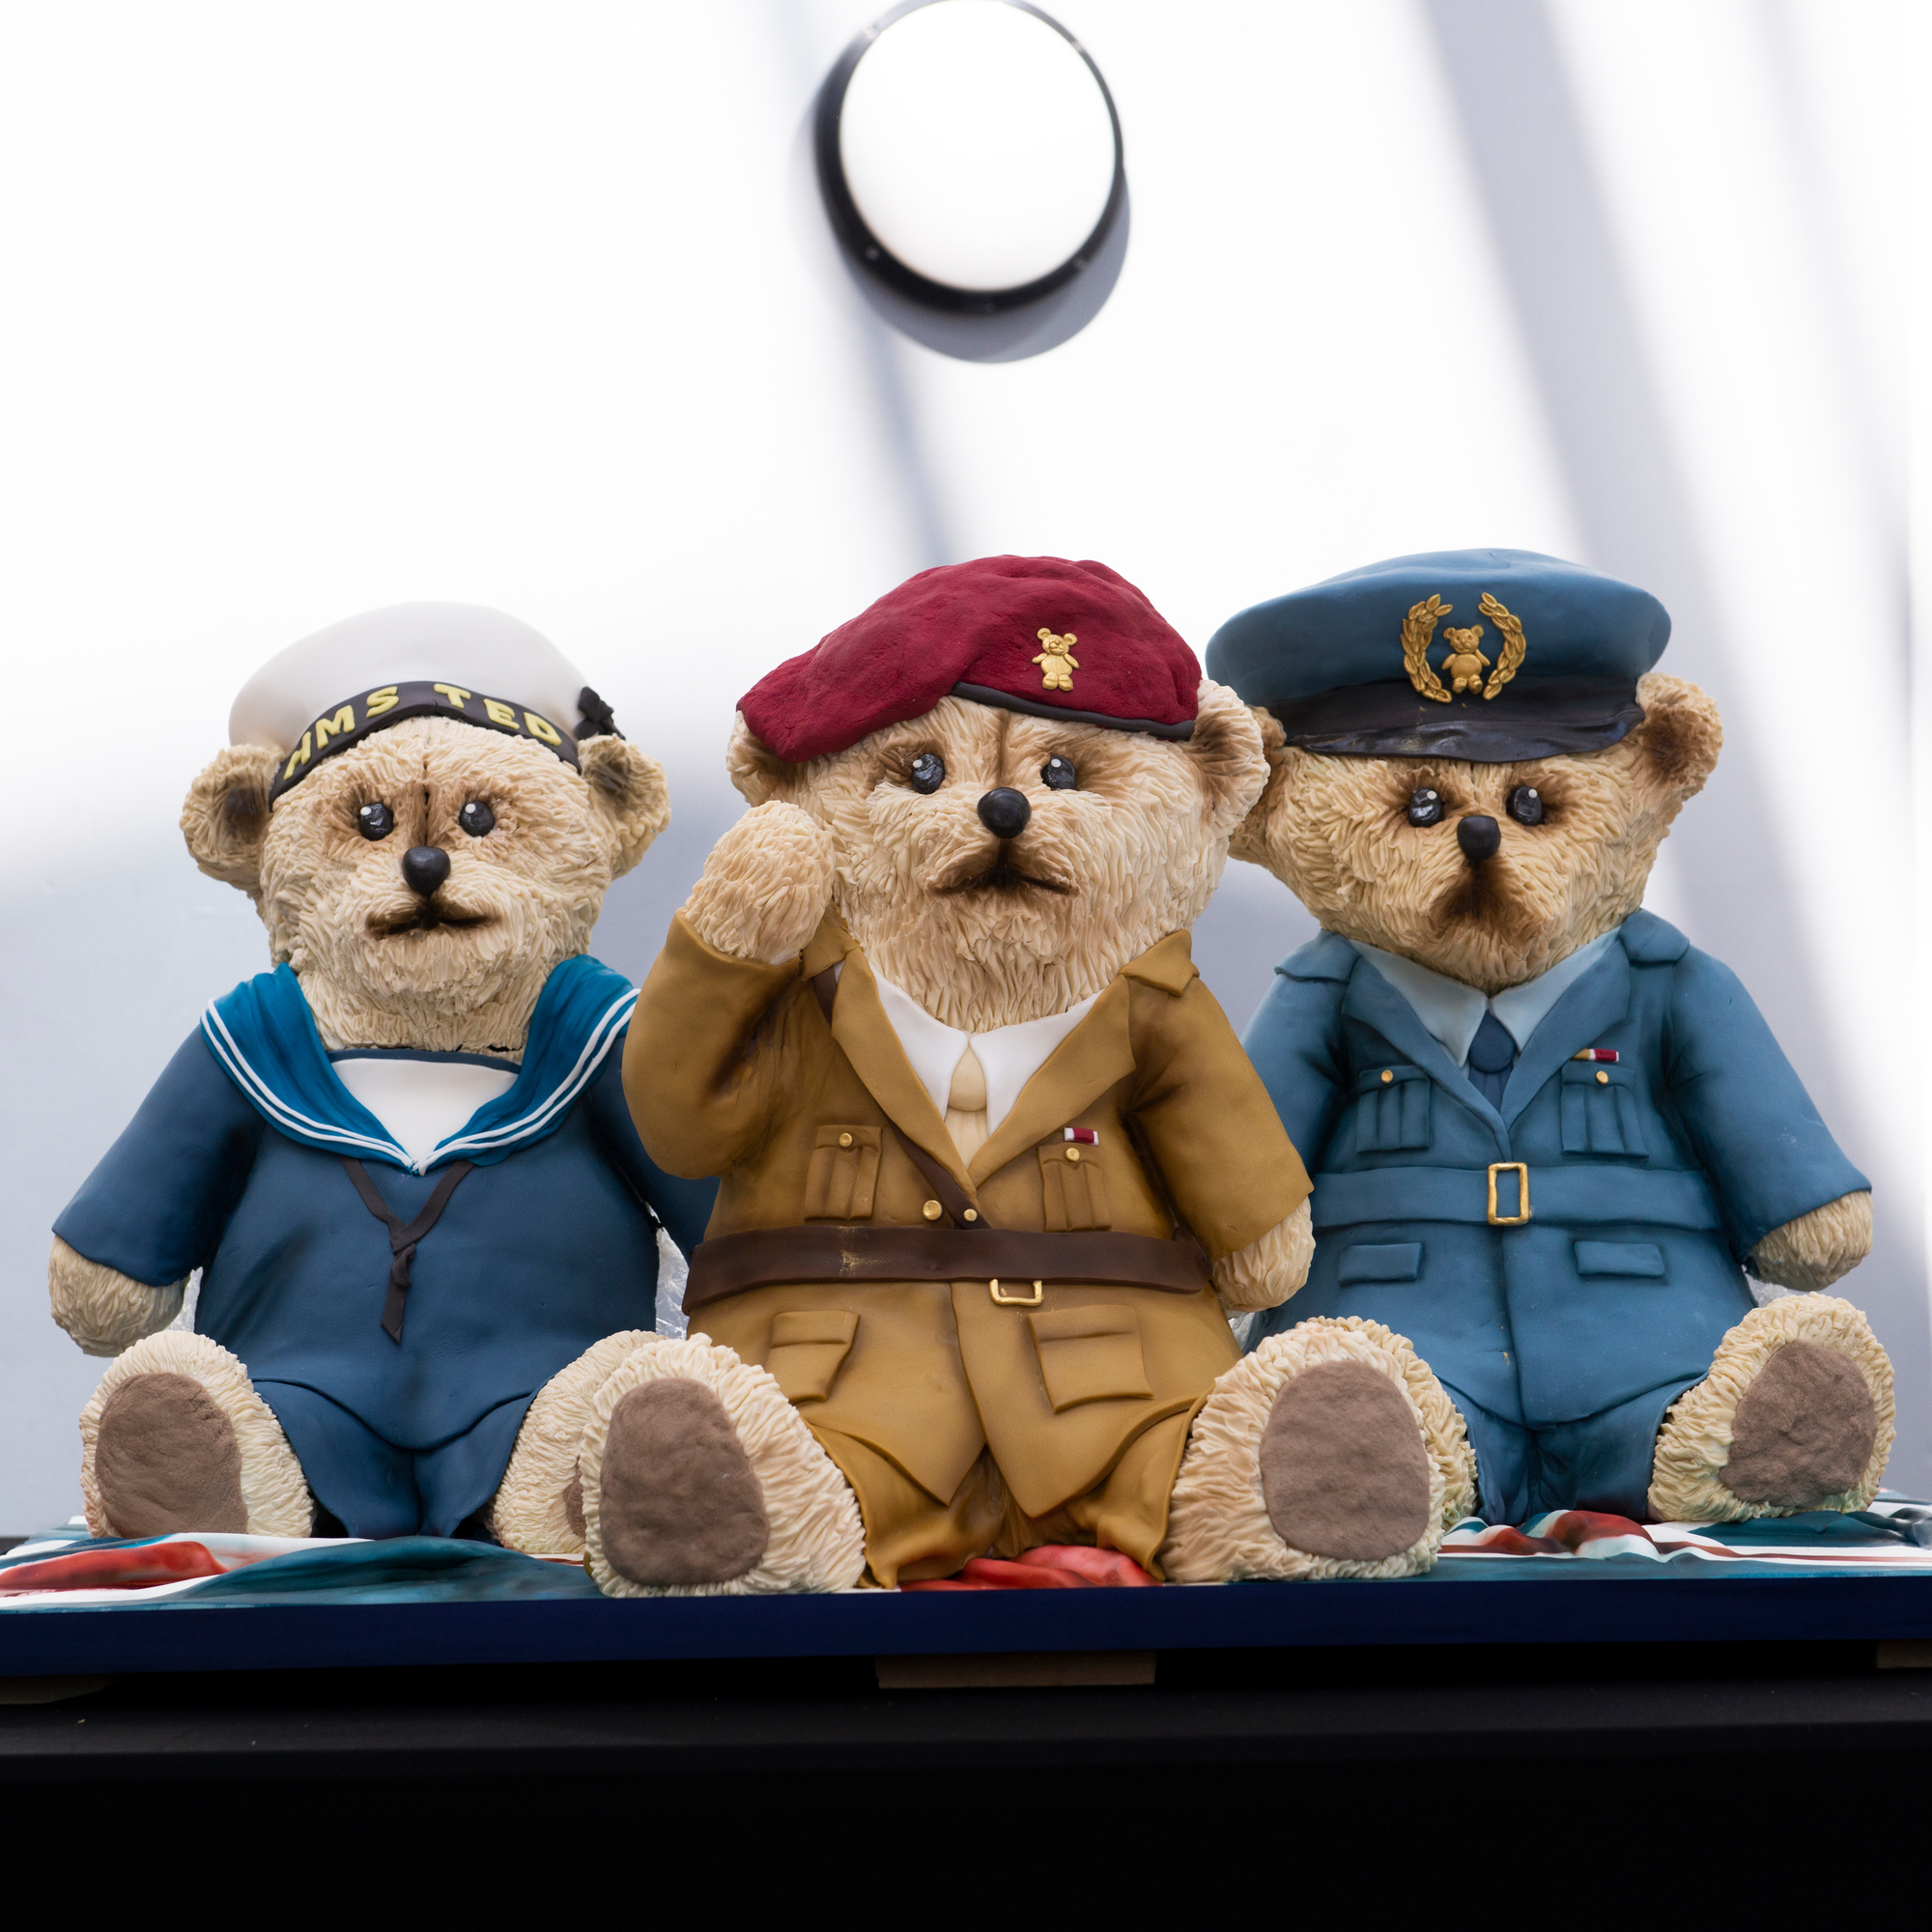 Three armed forces teddies sat next to each other on a table.